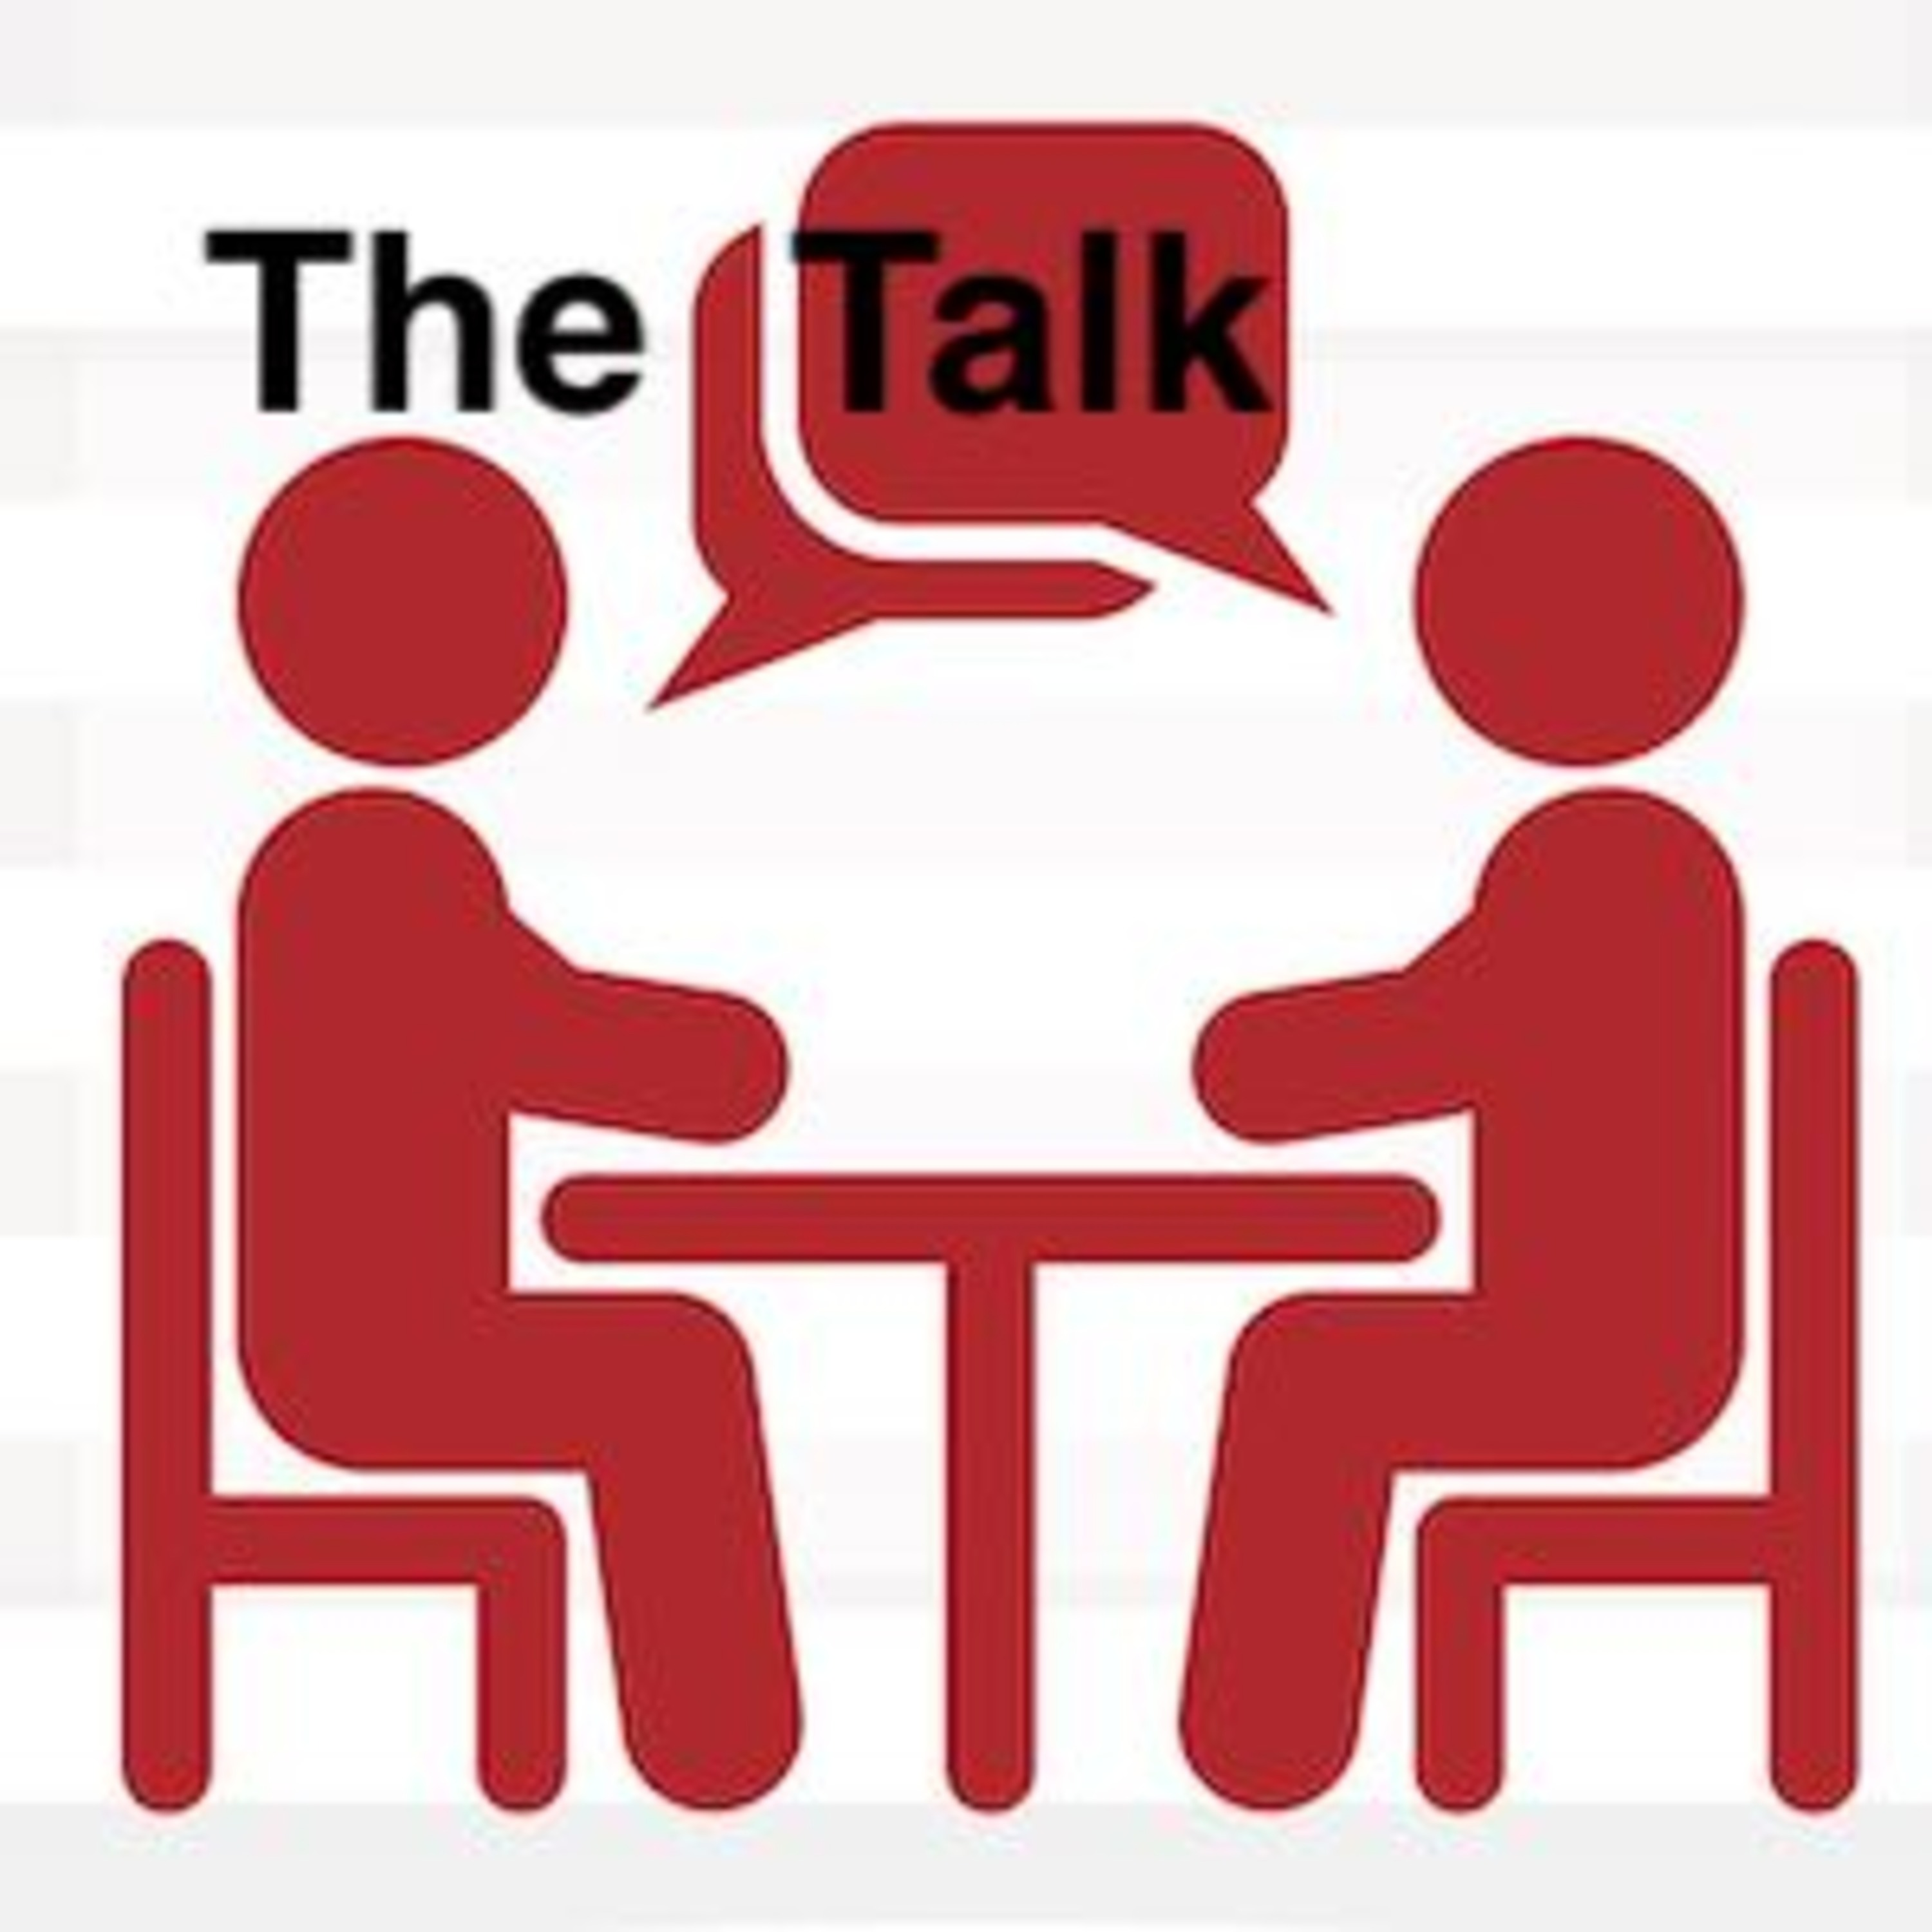 The Talk: How to interview students about academic integrity violations